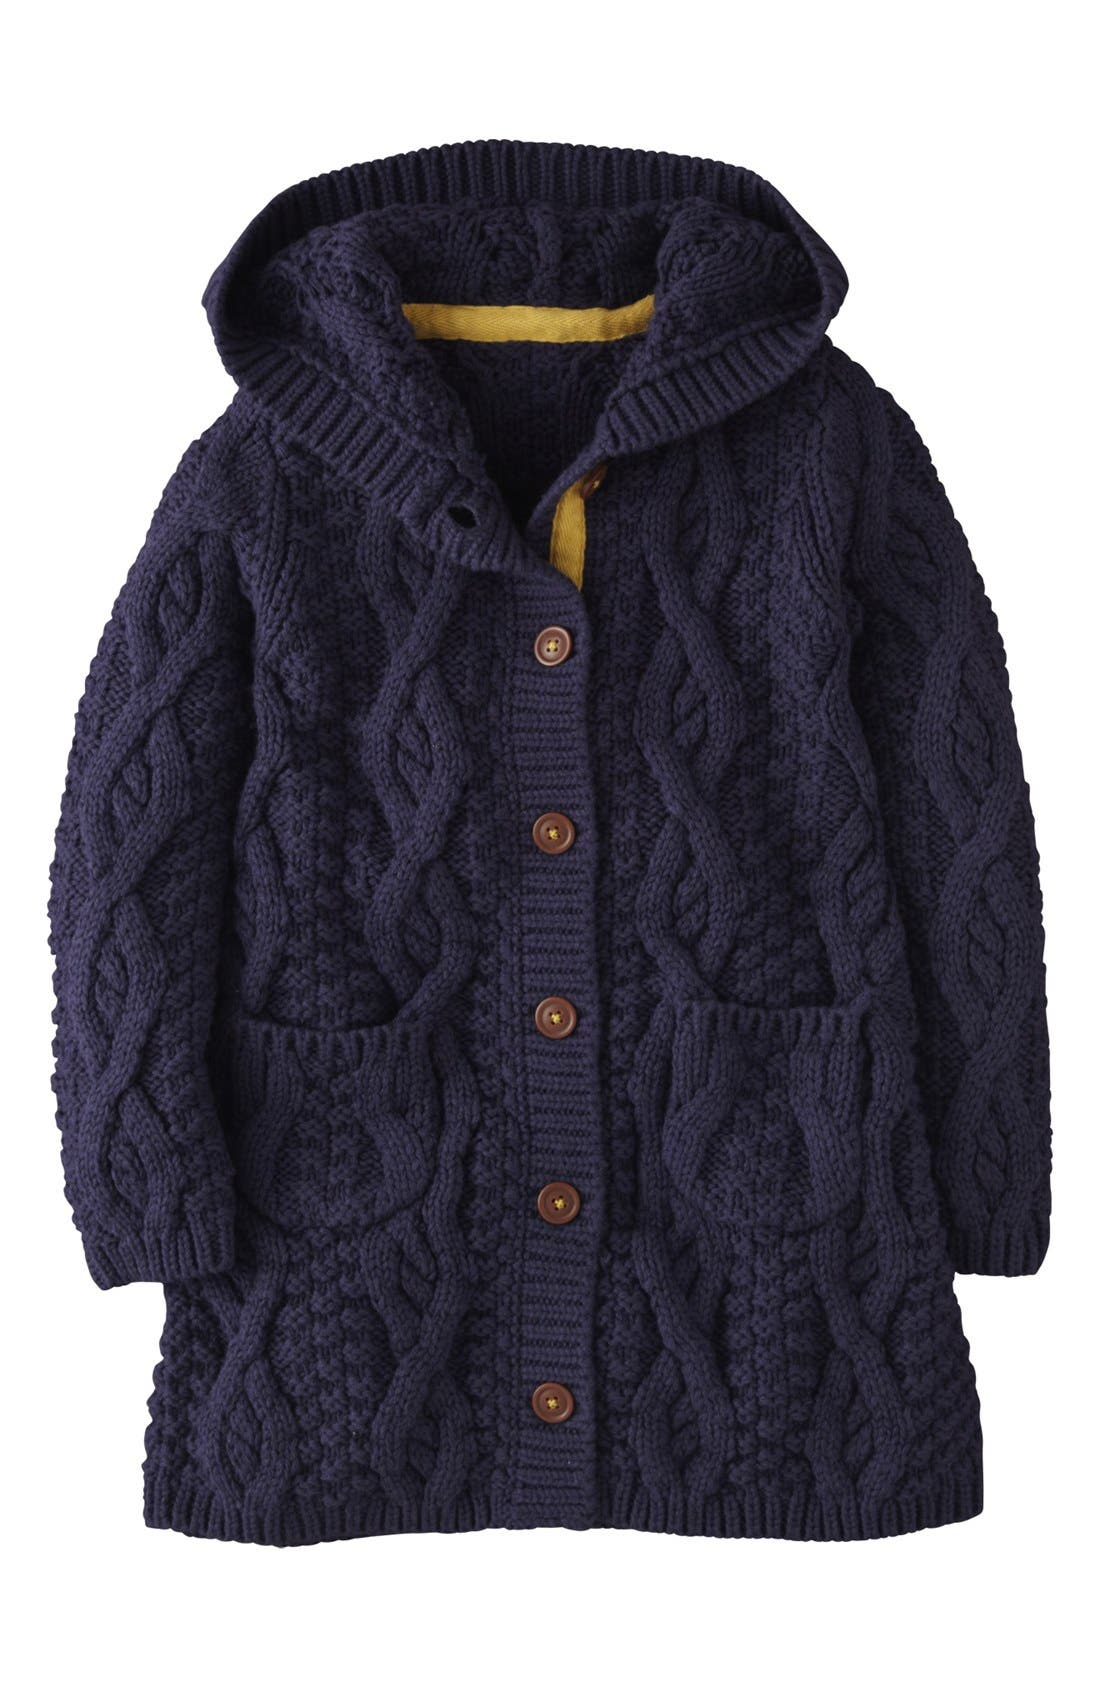 Alternate Image 1 Selected - Mini Boden Hooded Cardigan (Toddler Girls, Little Girls & Big Girls)